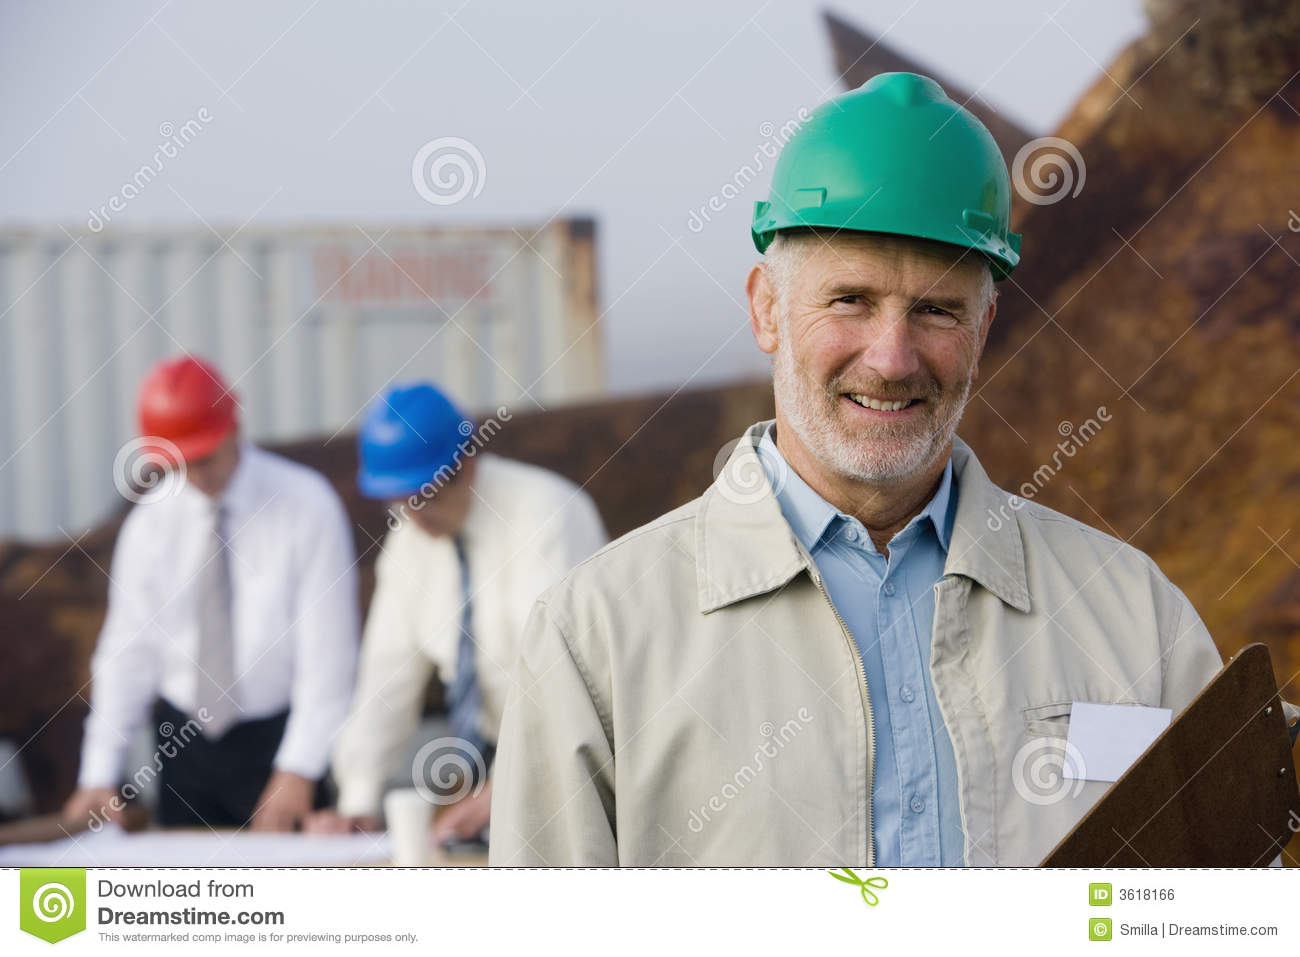 Shipping inspection engineers with plans